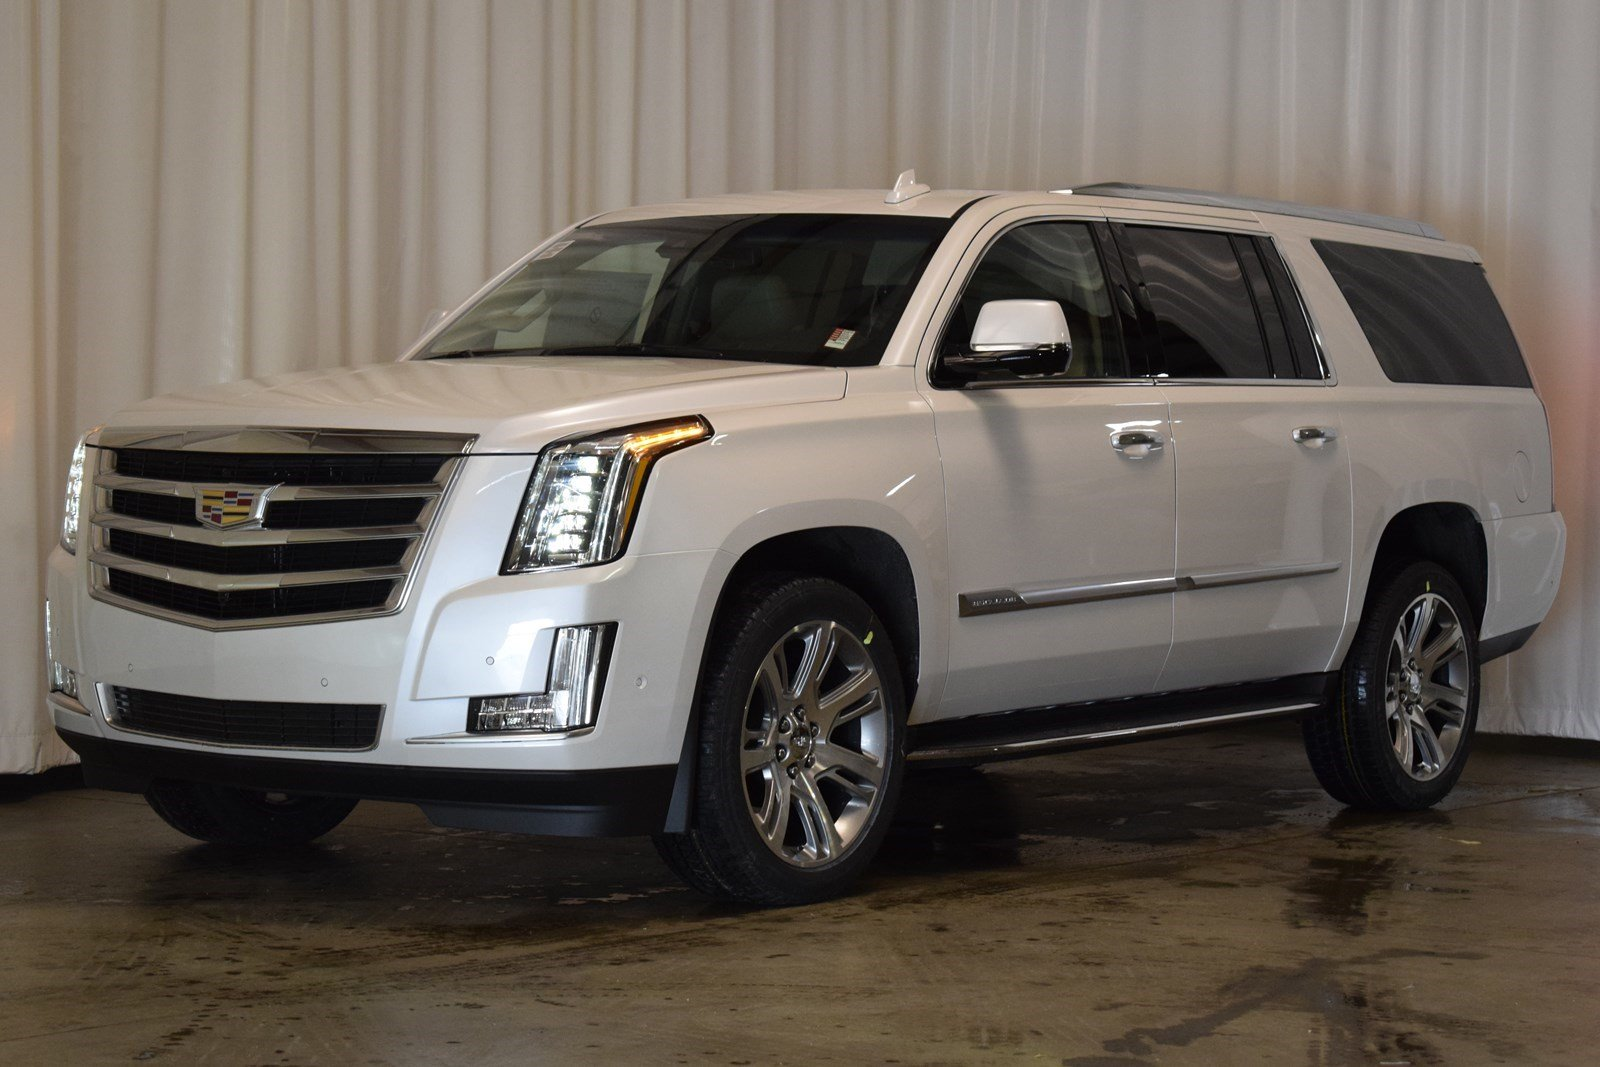 awd certified used camera srx cadillac suv detail navigation performance